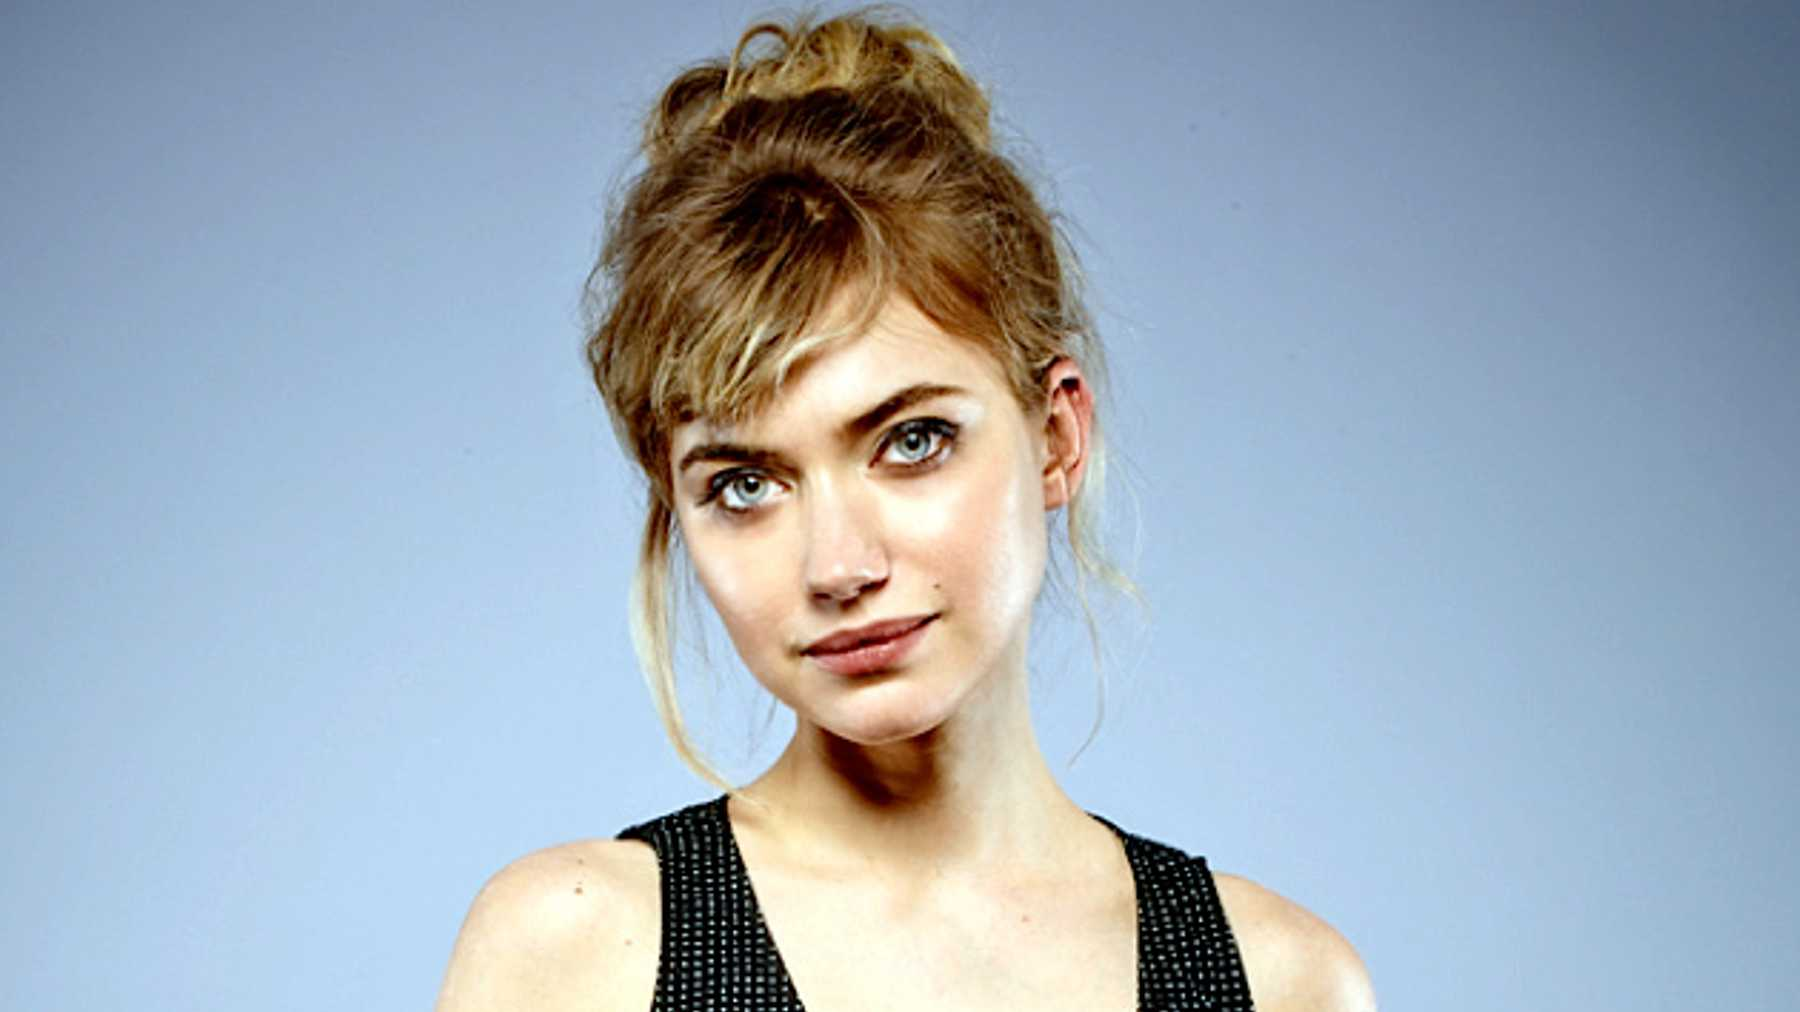 Imogen Poots In Talks For The Lonely Island's Connor4real   Movies   Empire